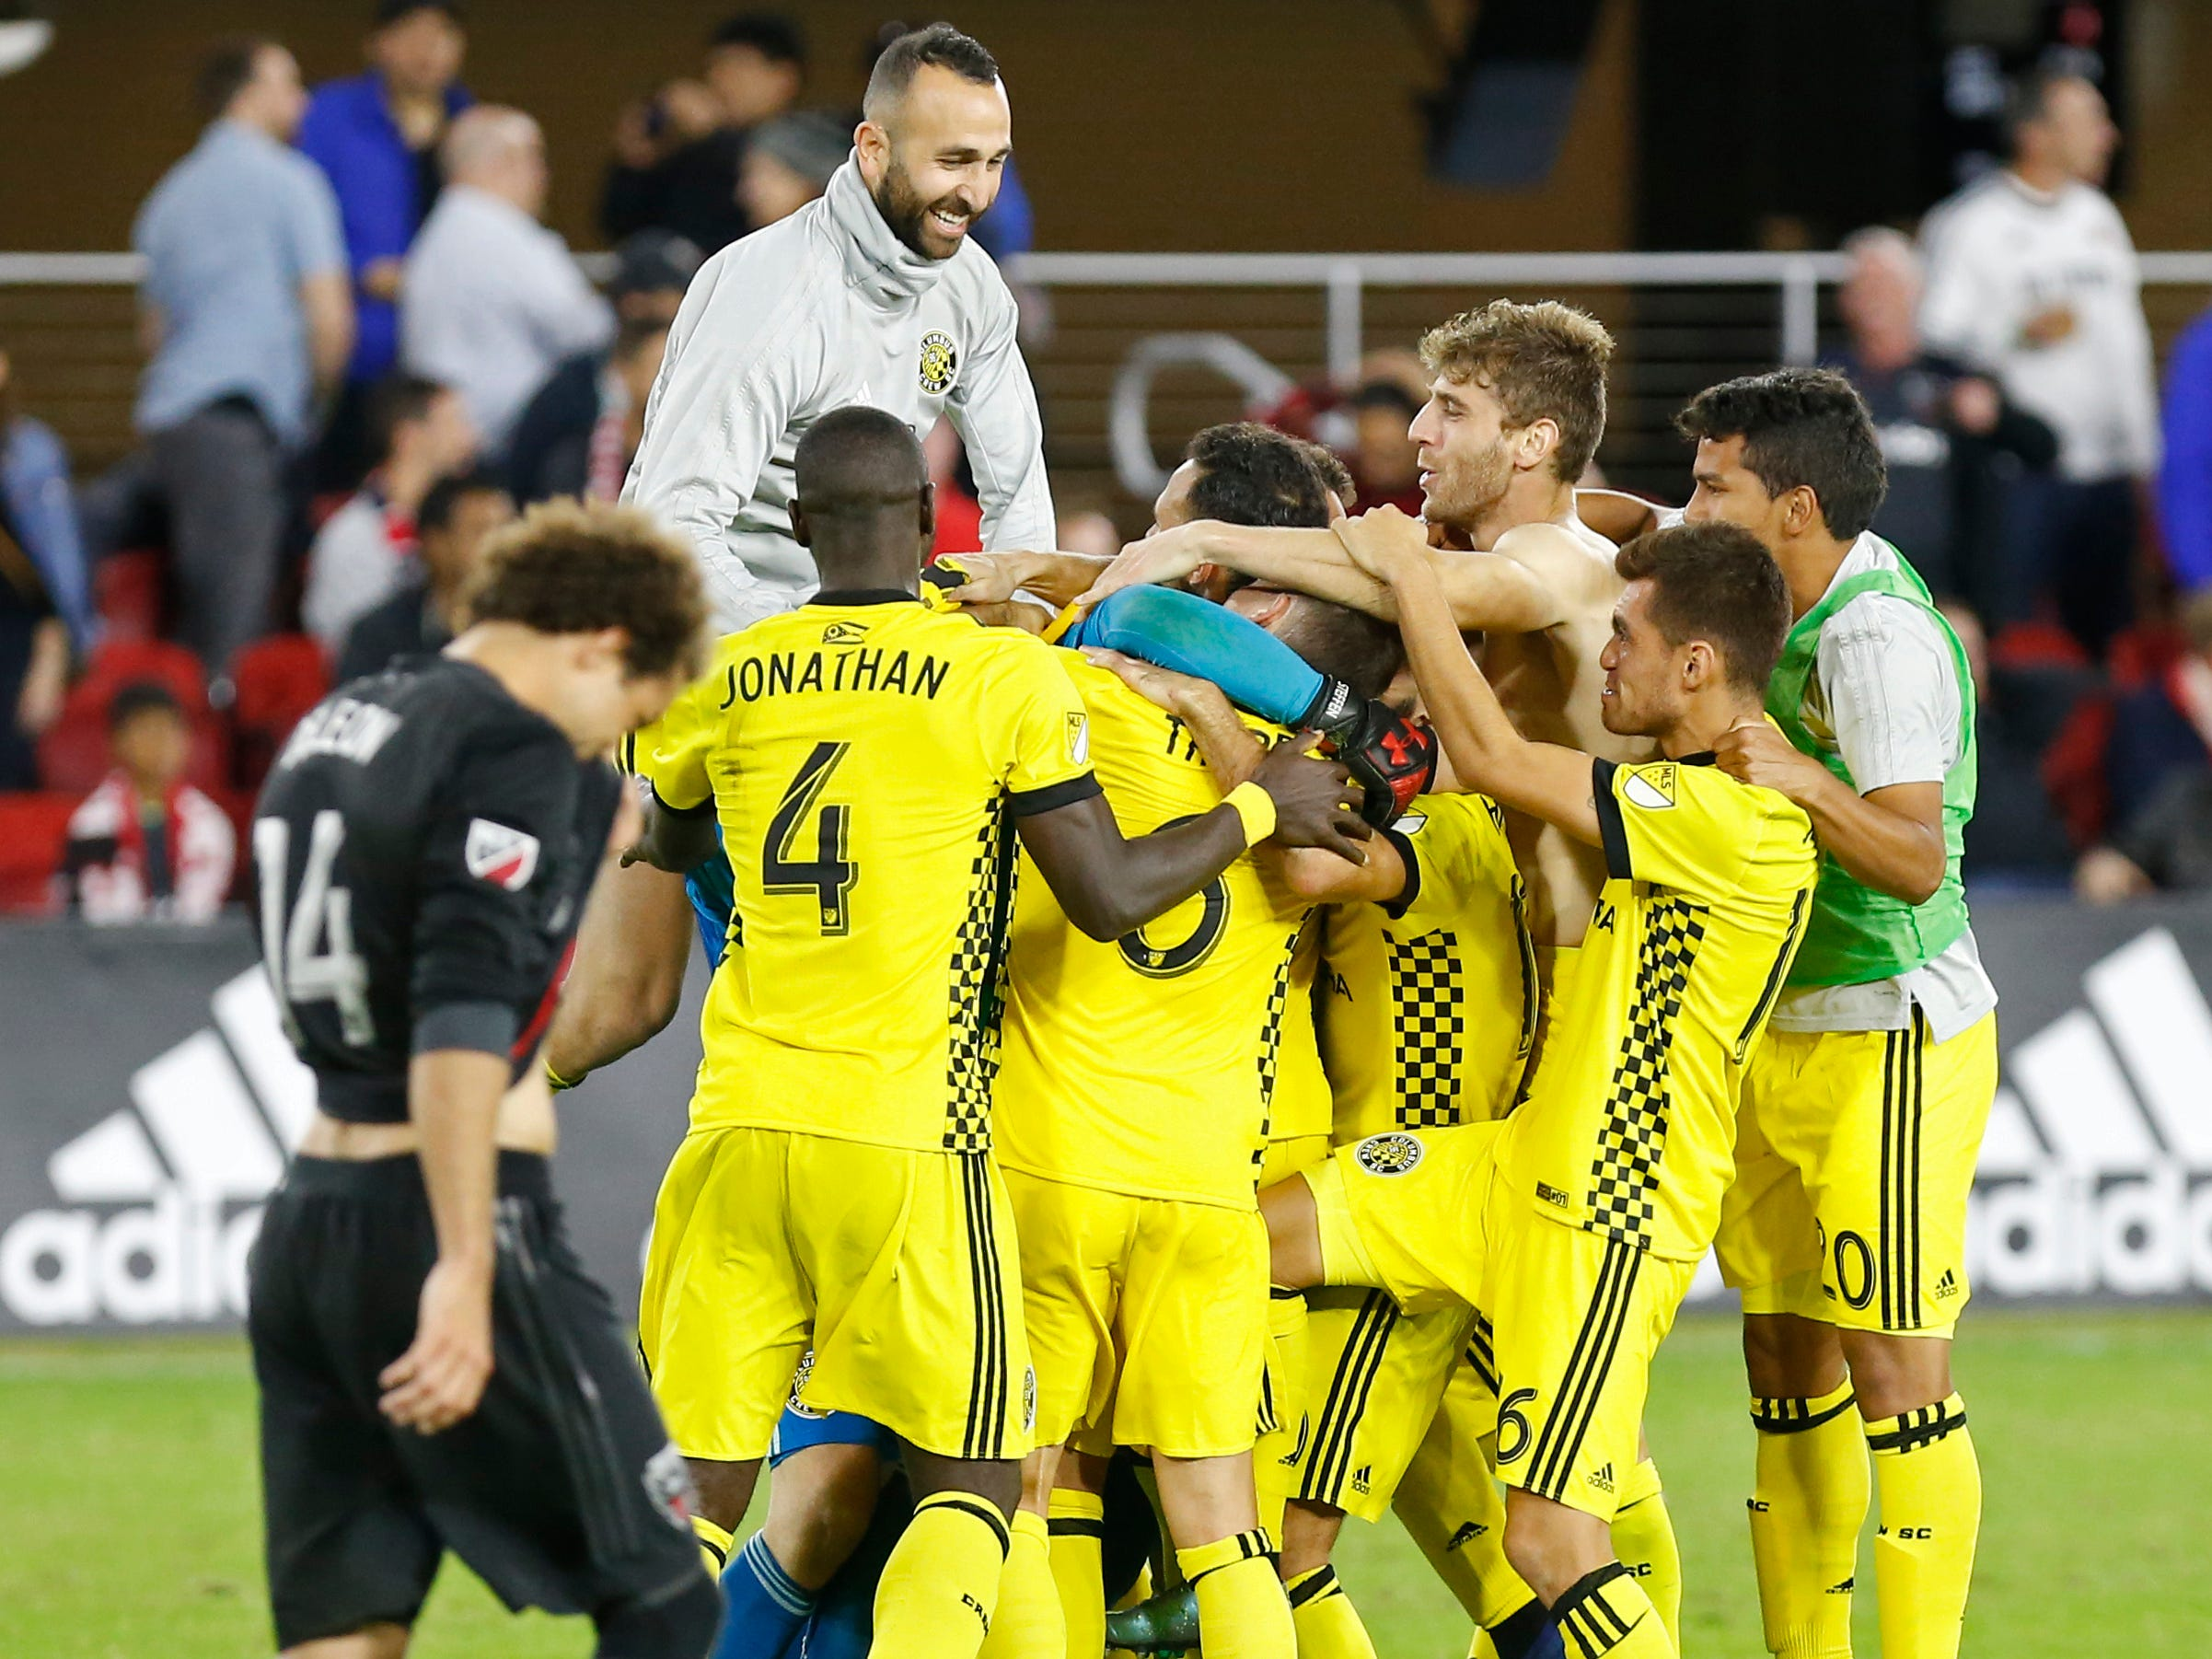 Columbus Crew players celebrate their playoff win over D.C. United at Audi Field.